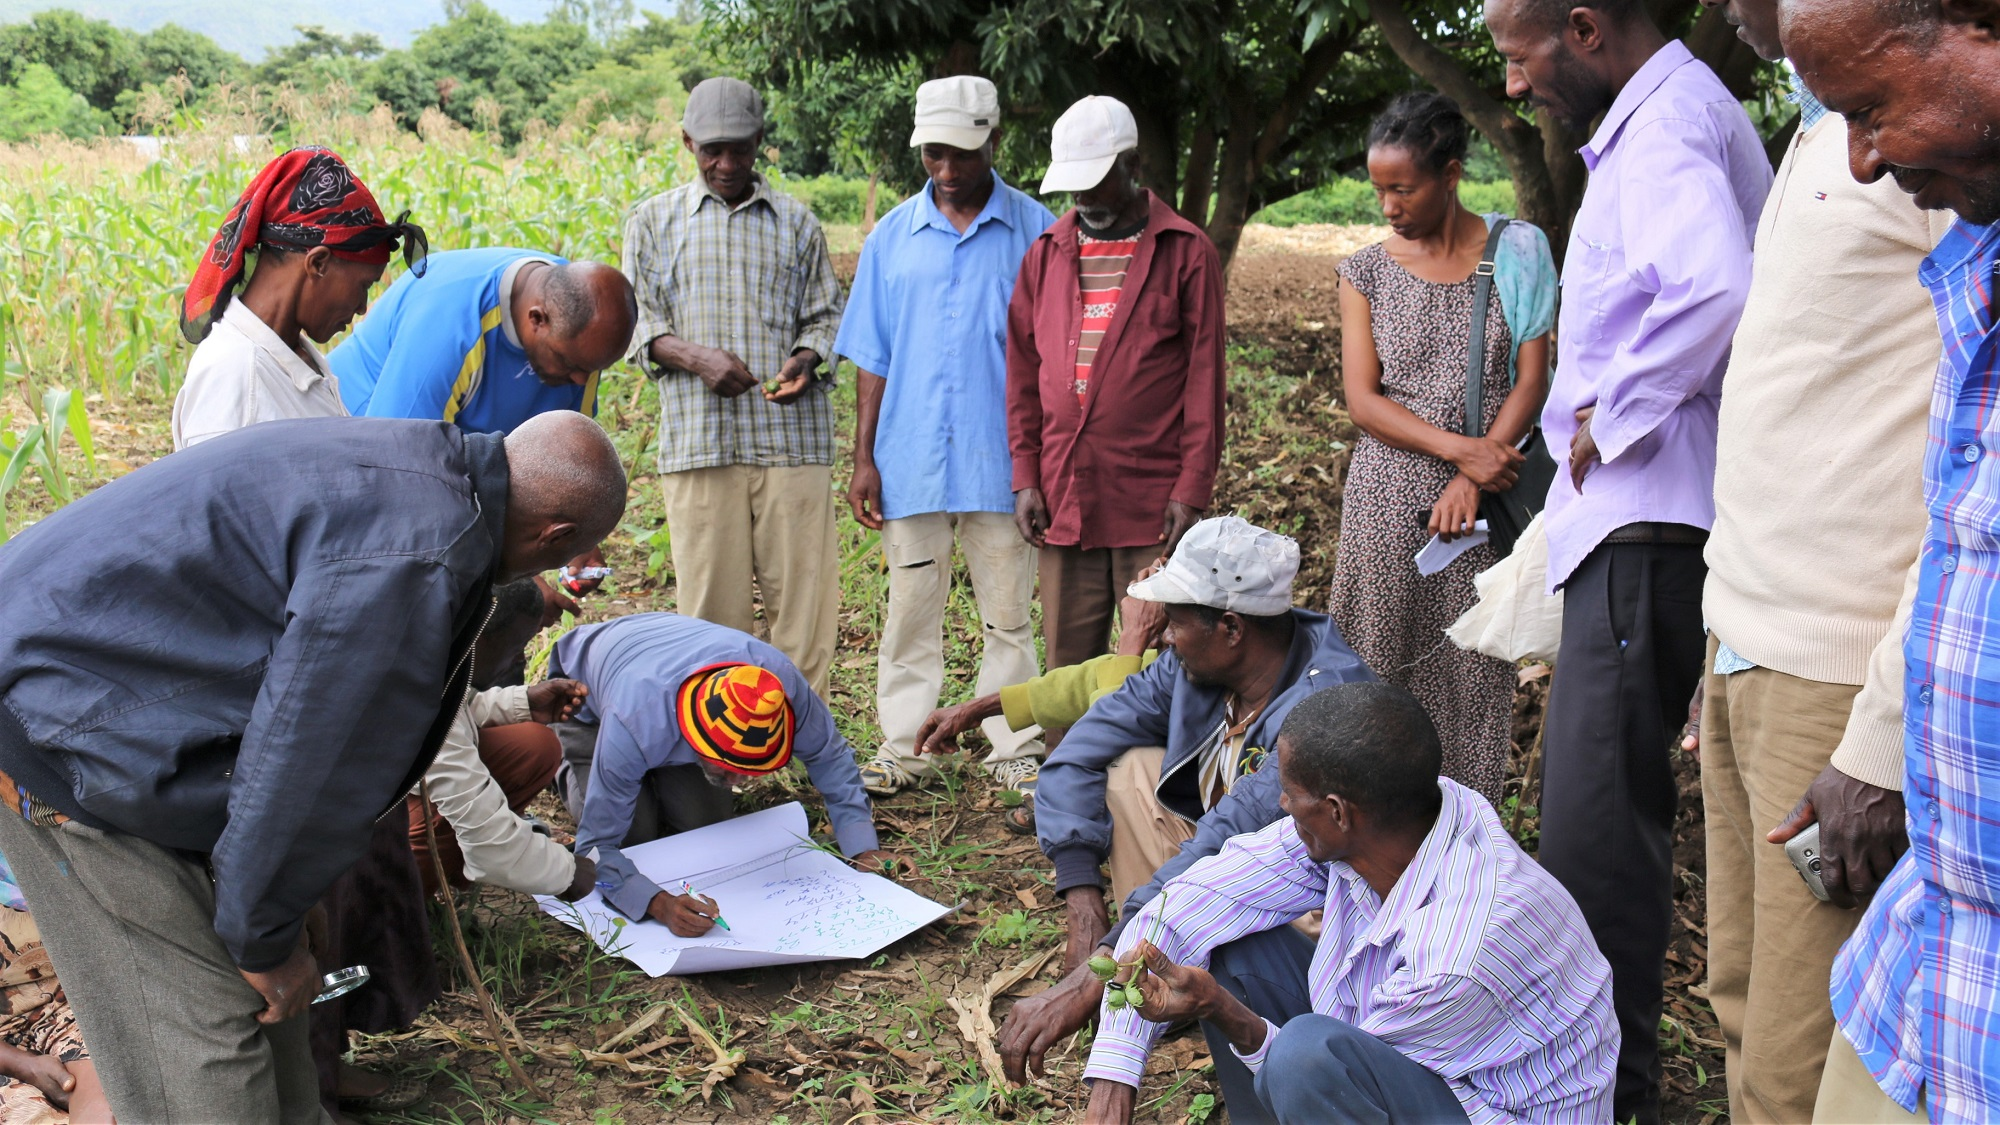 Farmer Field Schools provide farmers with training in organic techniques